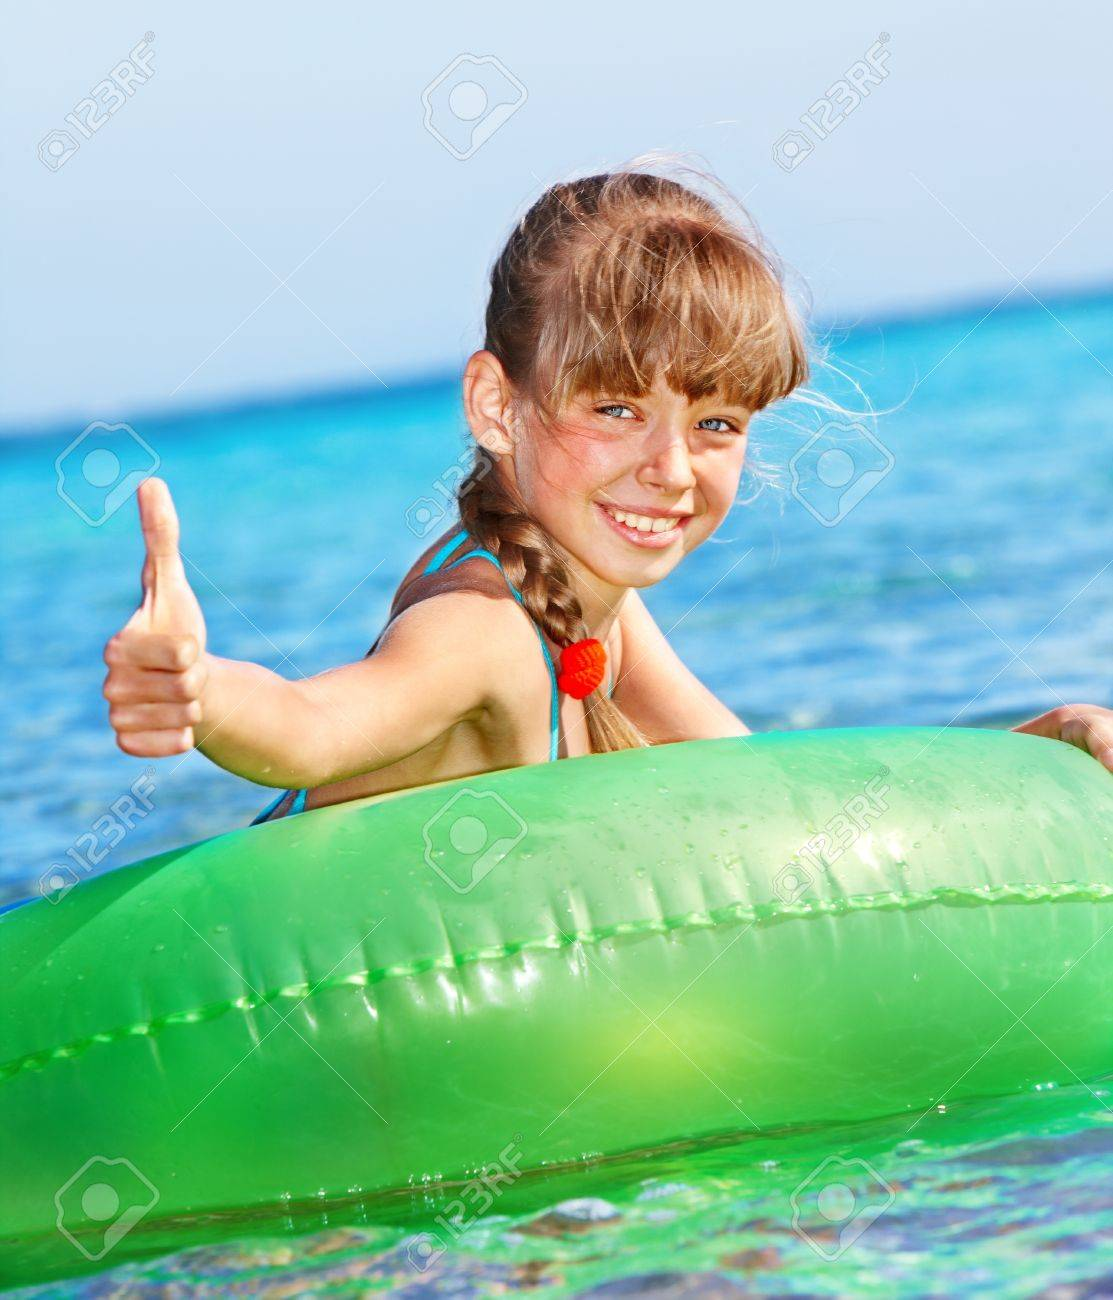 Children sitting on inflatable ring in swimming pool. Stock Photo - 9780990